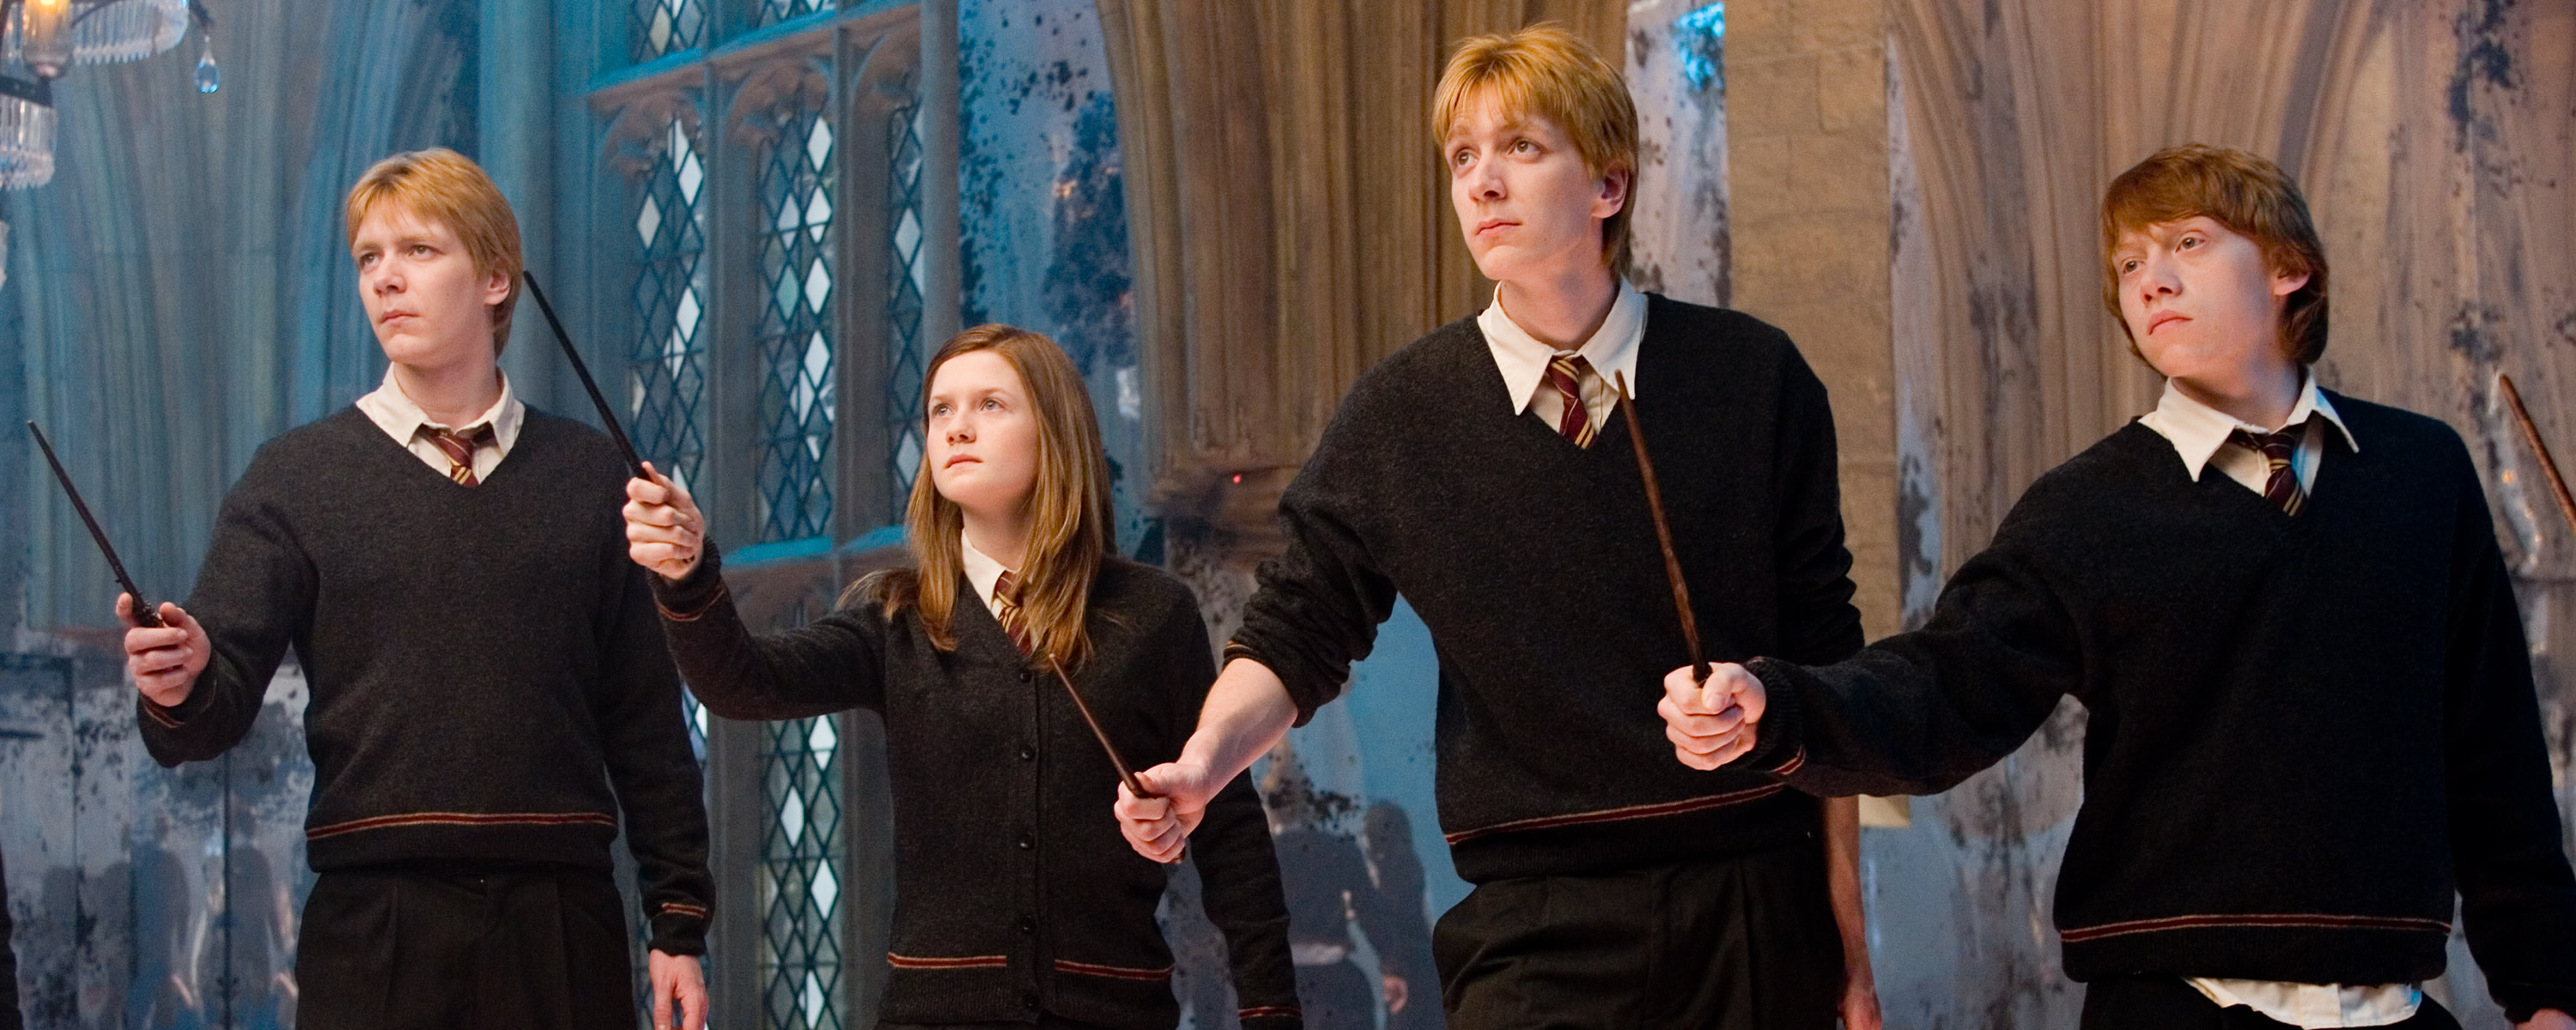 HP-F5-weasleys-wands-da-web-header